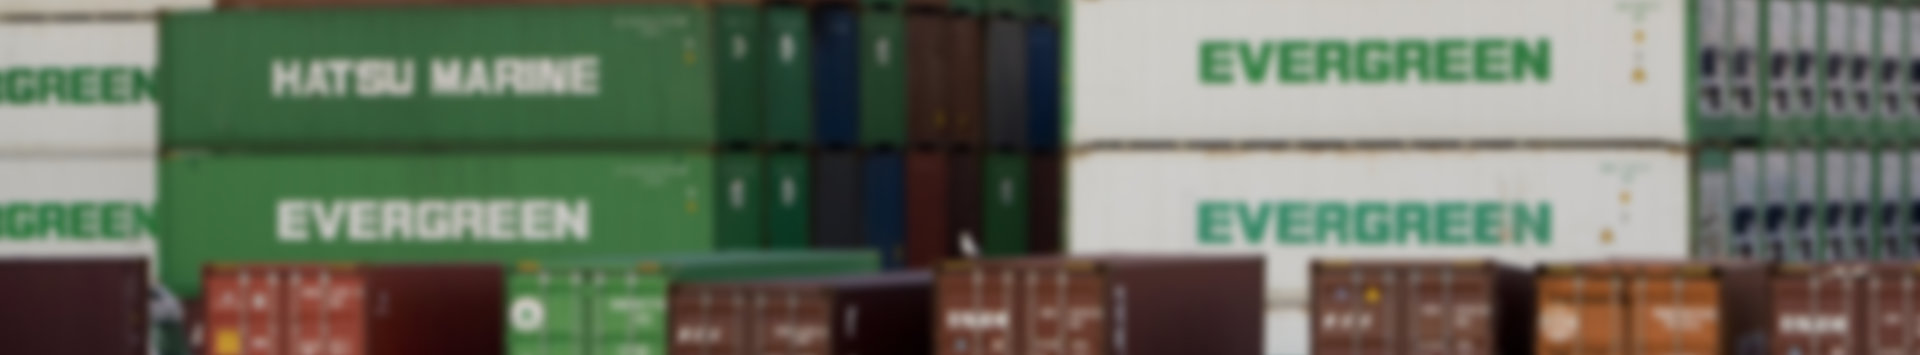 horizontal image of shipping containers